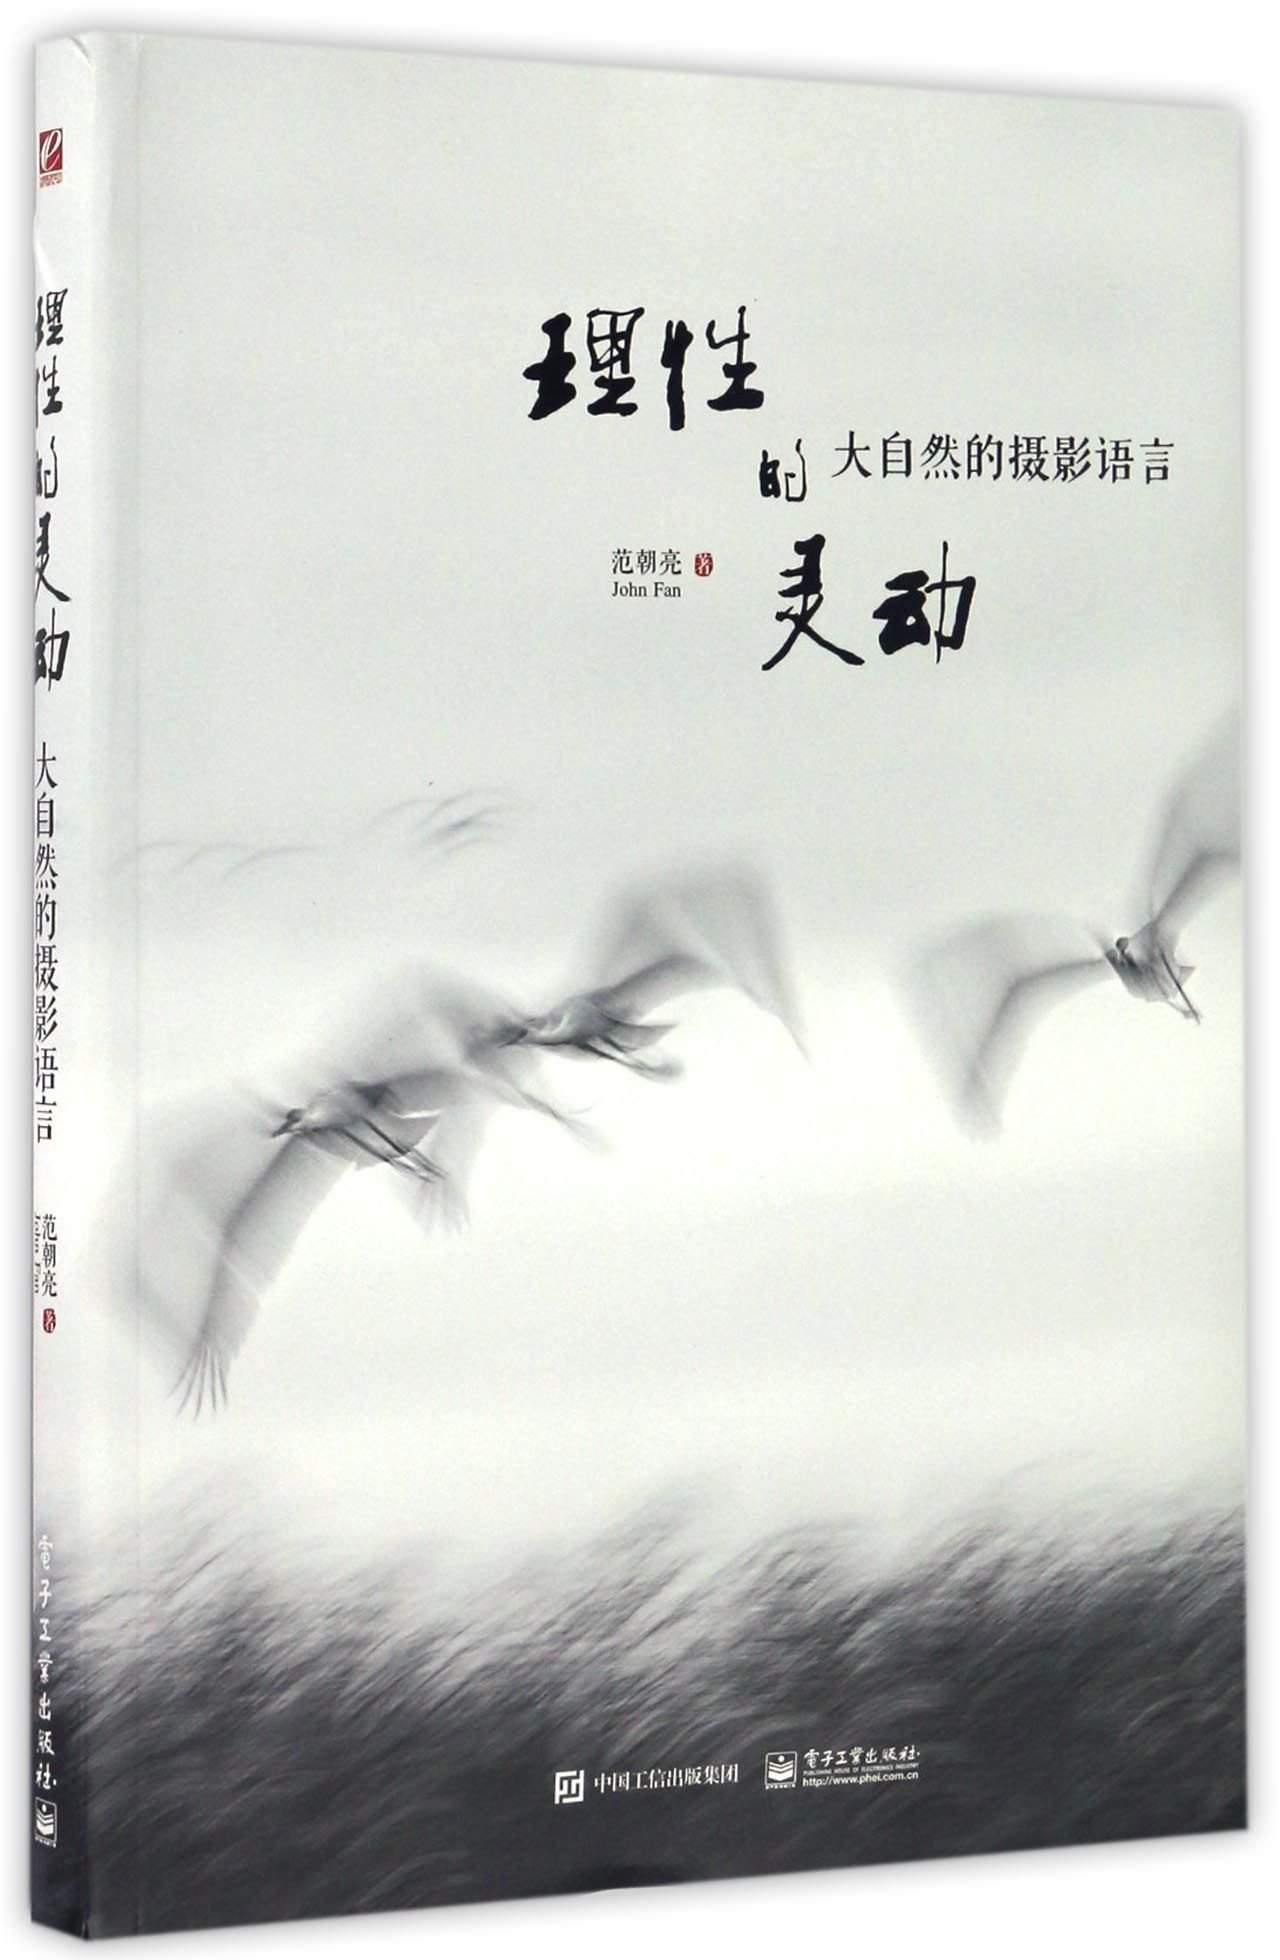 Rational Intelligence: The Photographic Language of Nature (Chinese Edition)